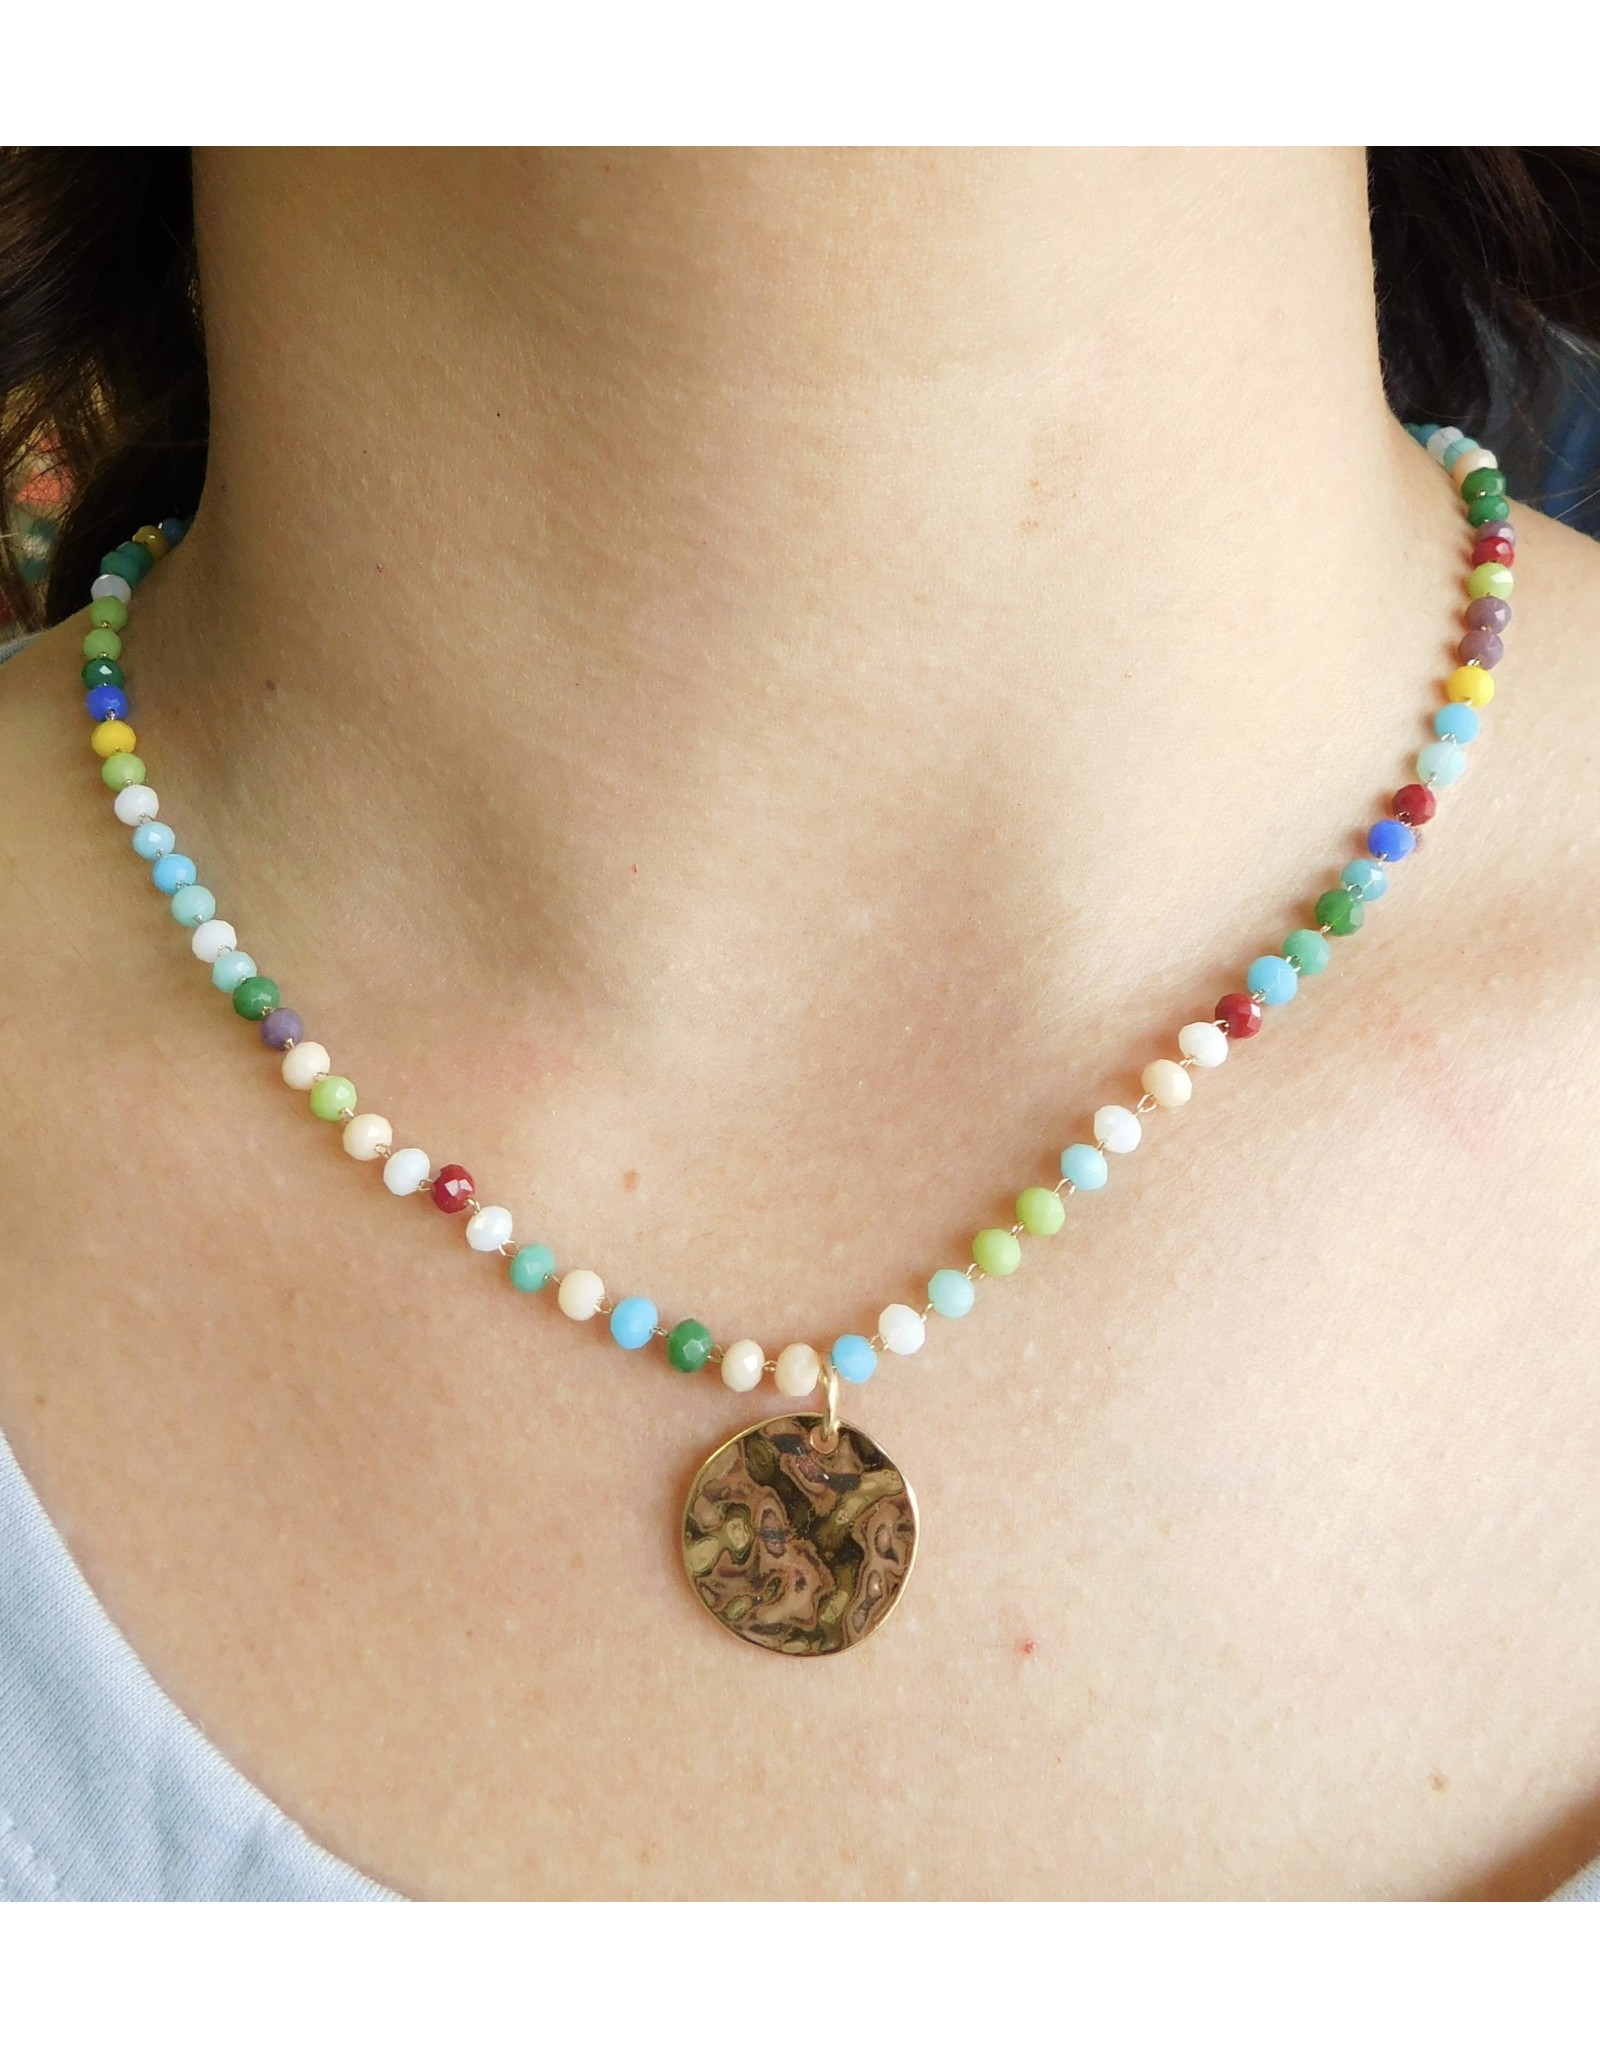 HAPPY VIBES Beaded Necklace with Gold Pendent